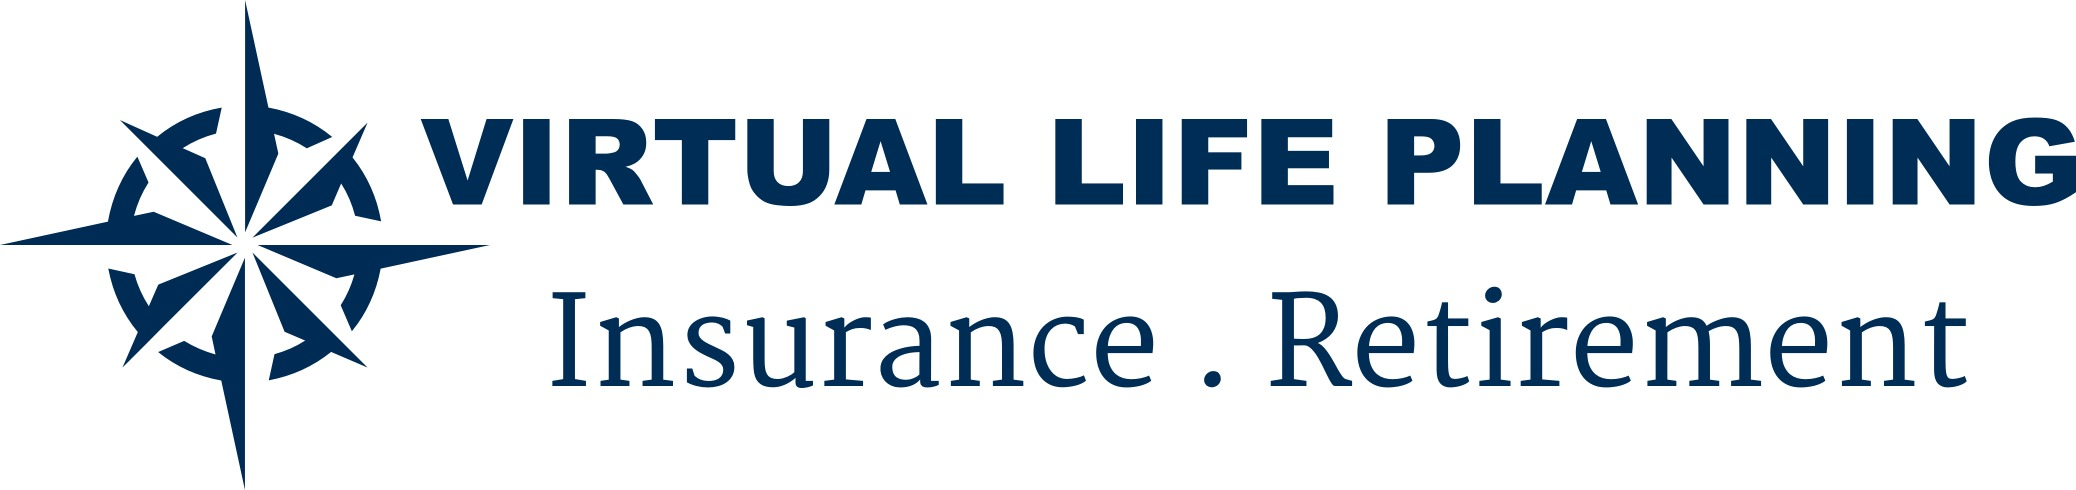 Instant Term Life Insurance Quotes Virtual Life Planning  Term Life Quotes